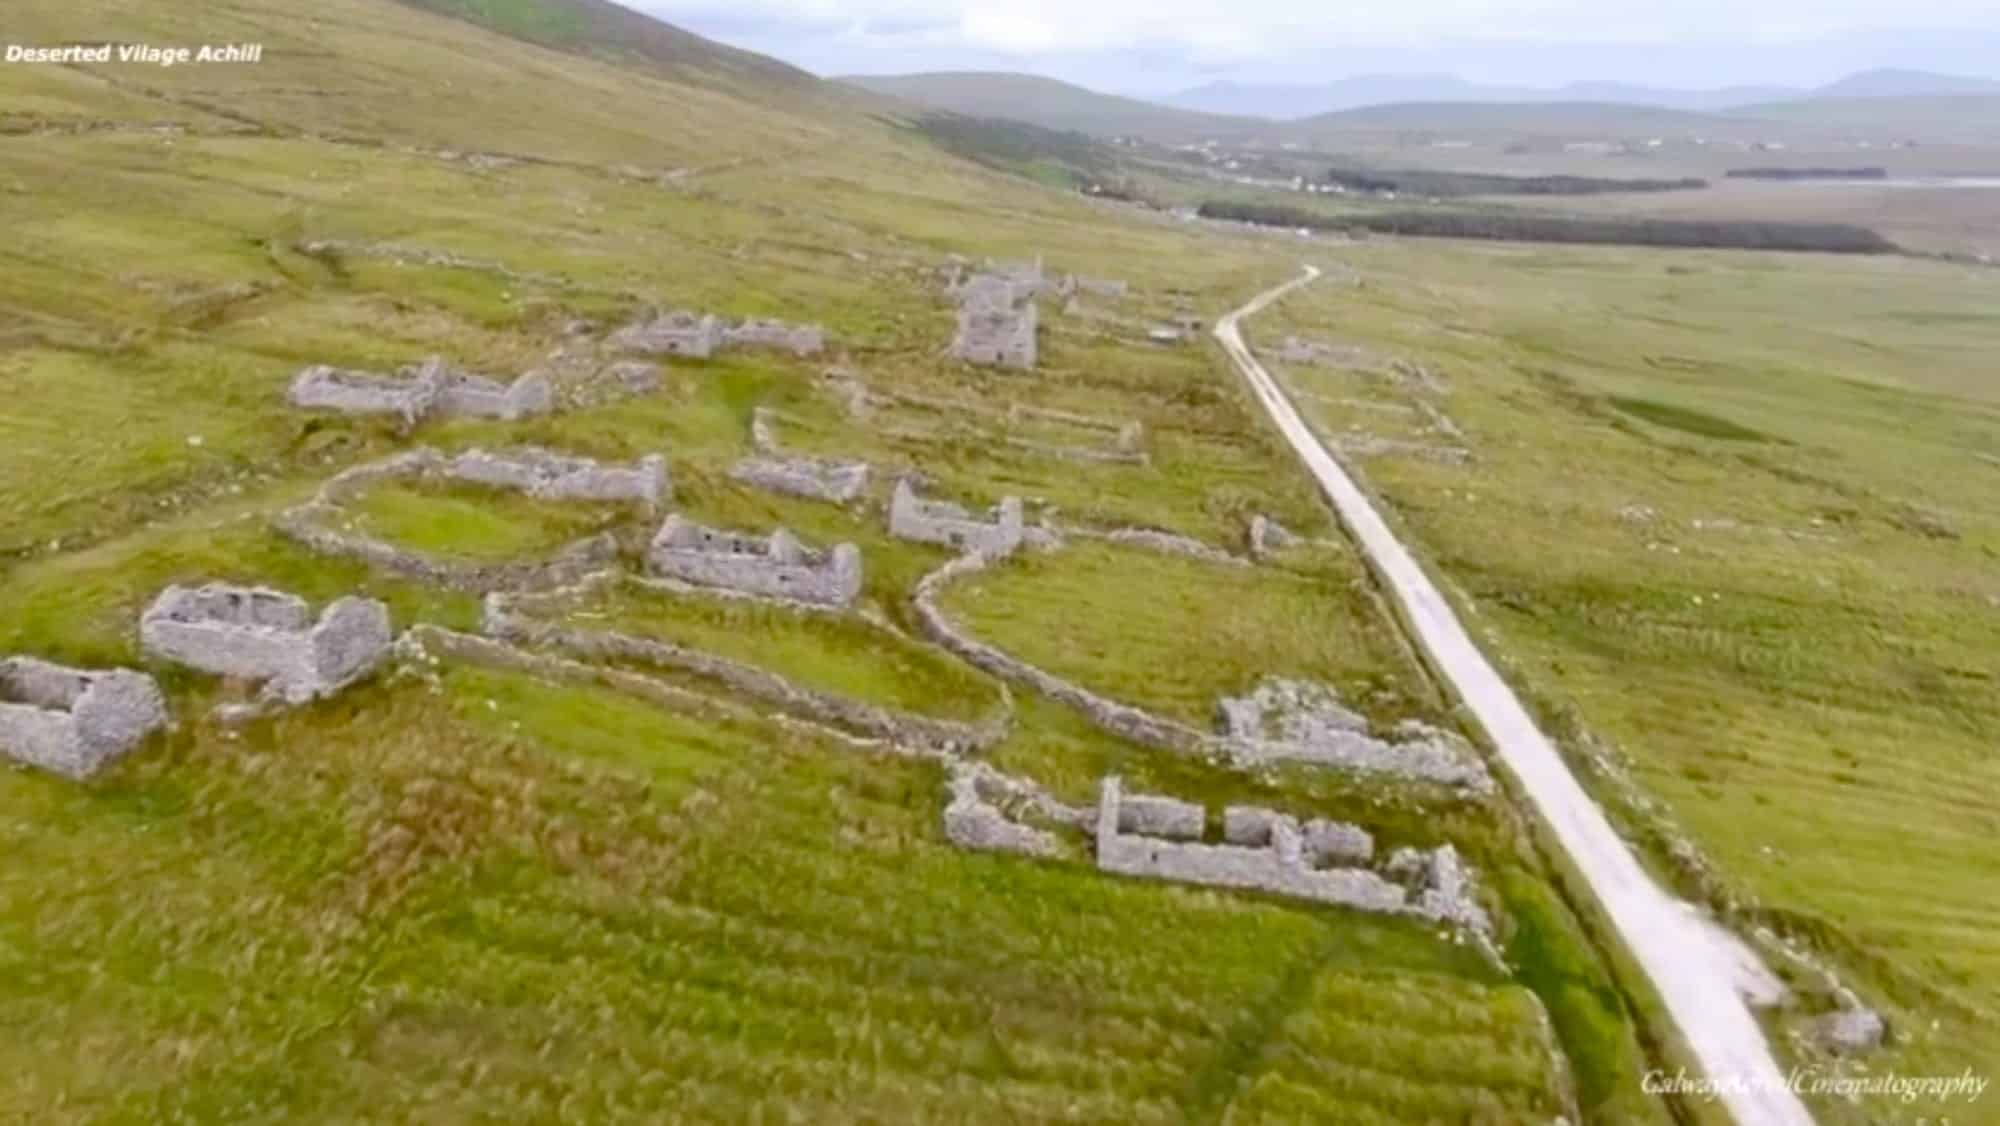 Ancient, deserted Irish village captured by drone